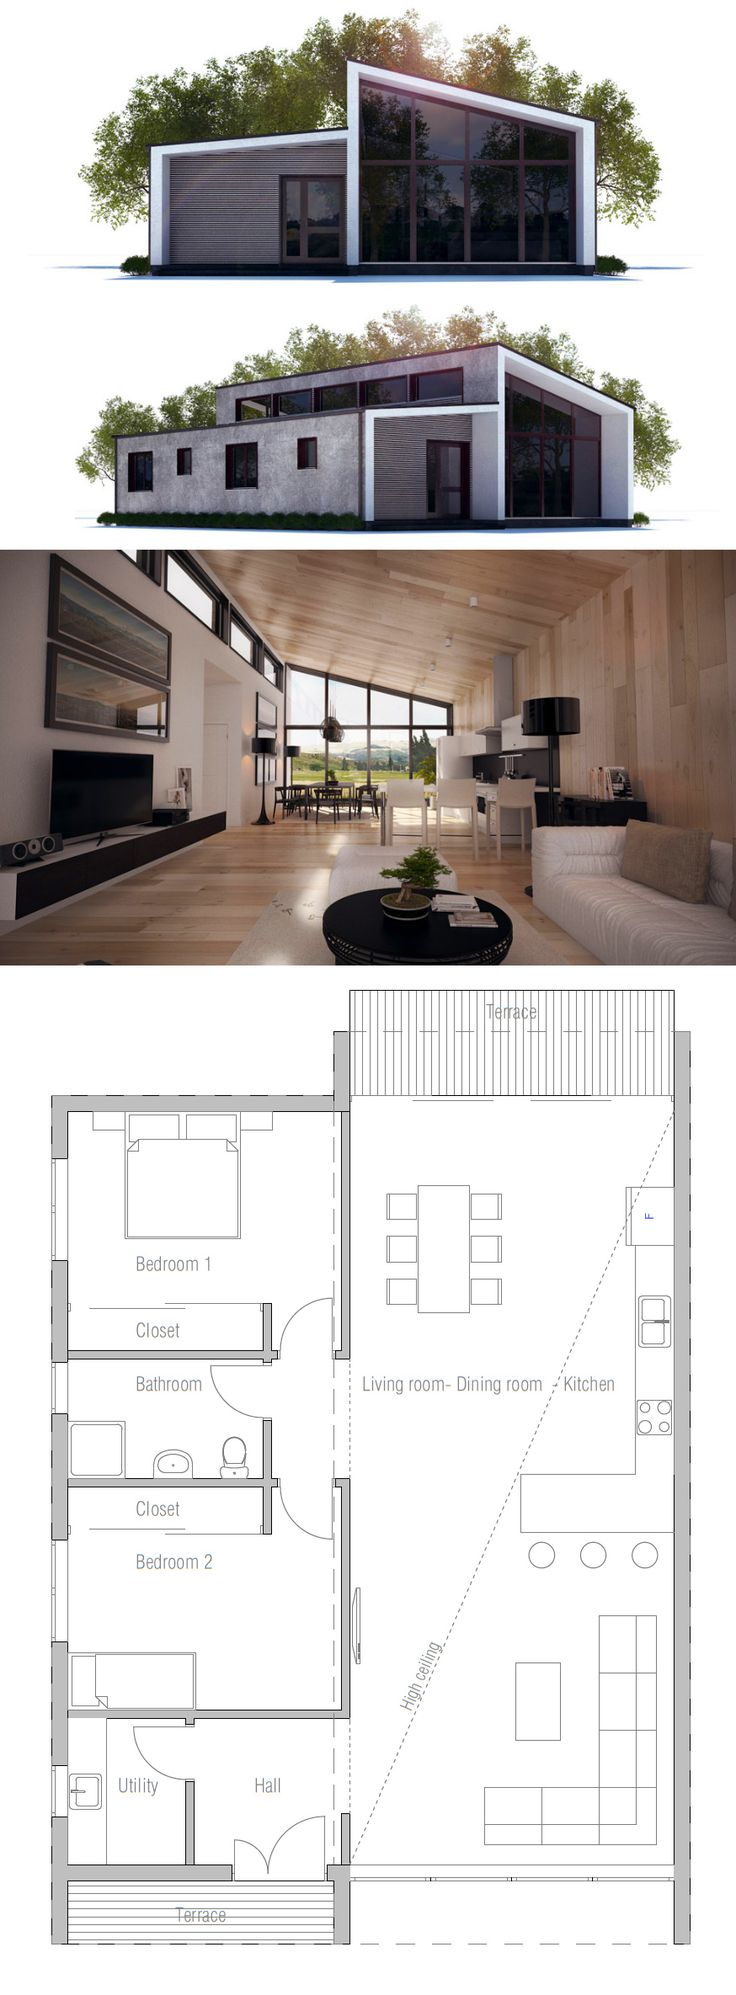 437 best casas images on pinterest homes small houses and casa small home planssmall